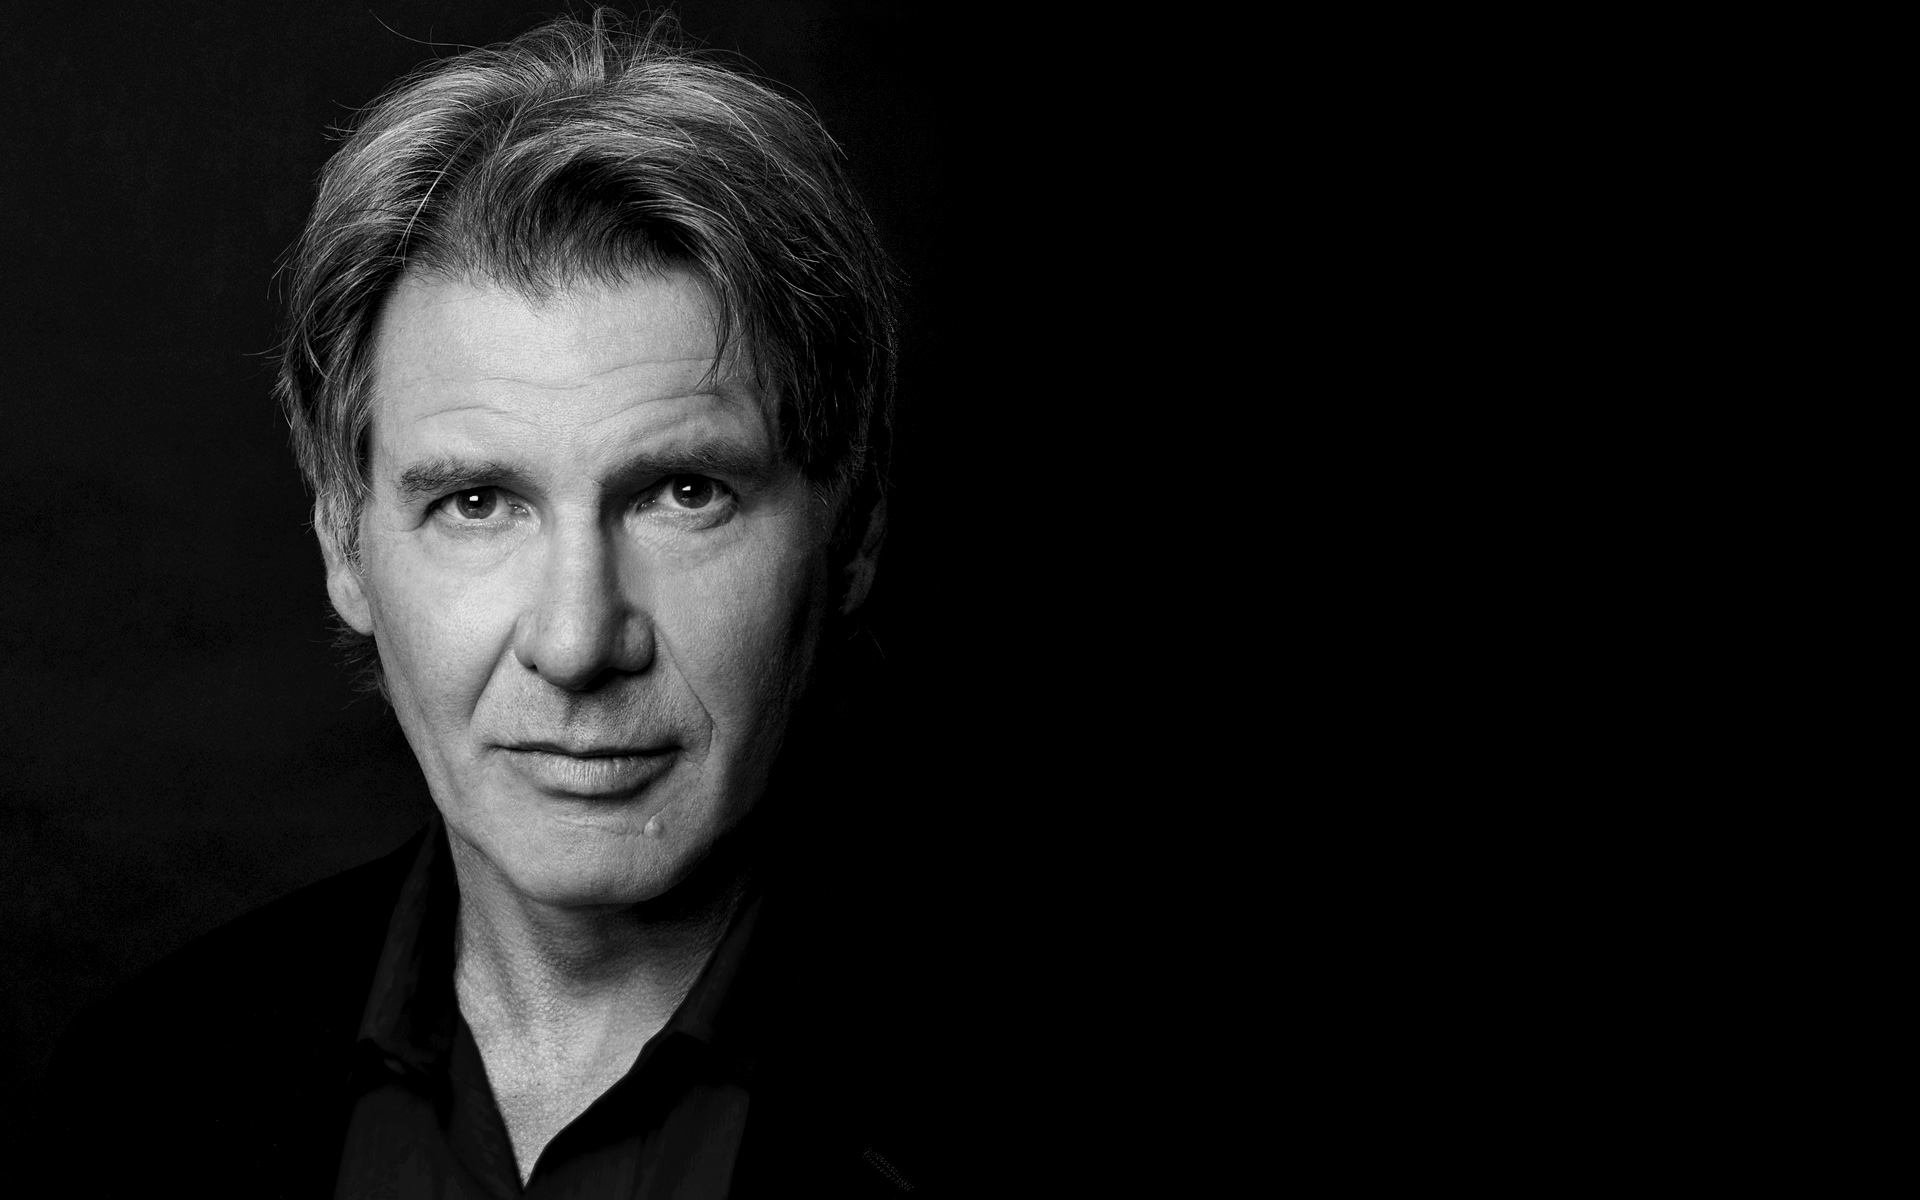 NTSB Has Released An Official Statement On Harrison Ford's Plane Crash